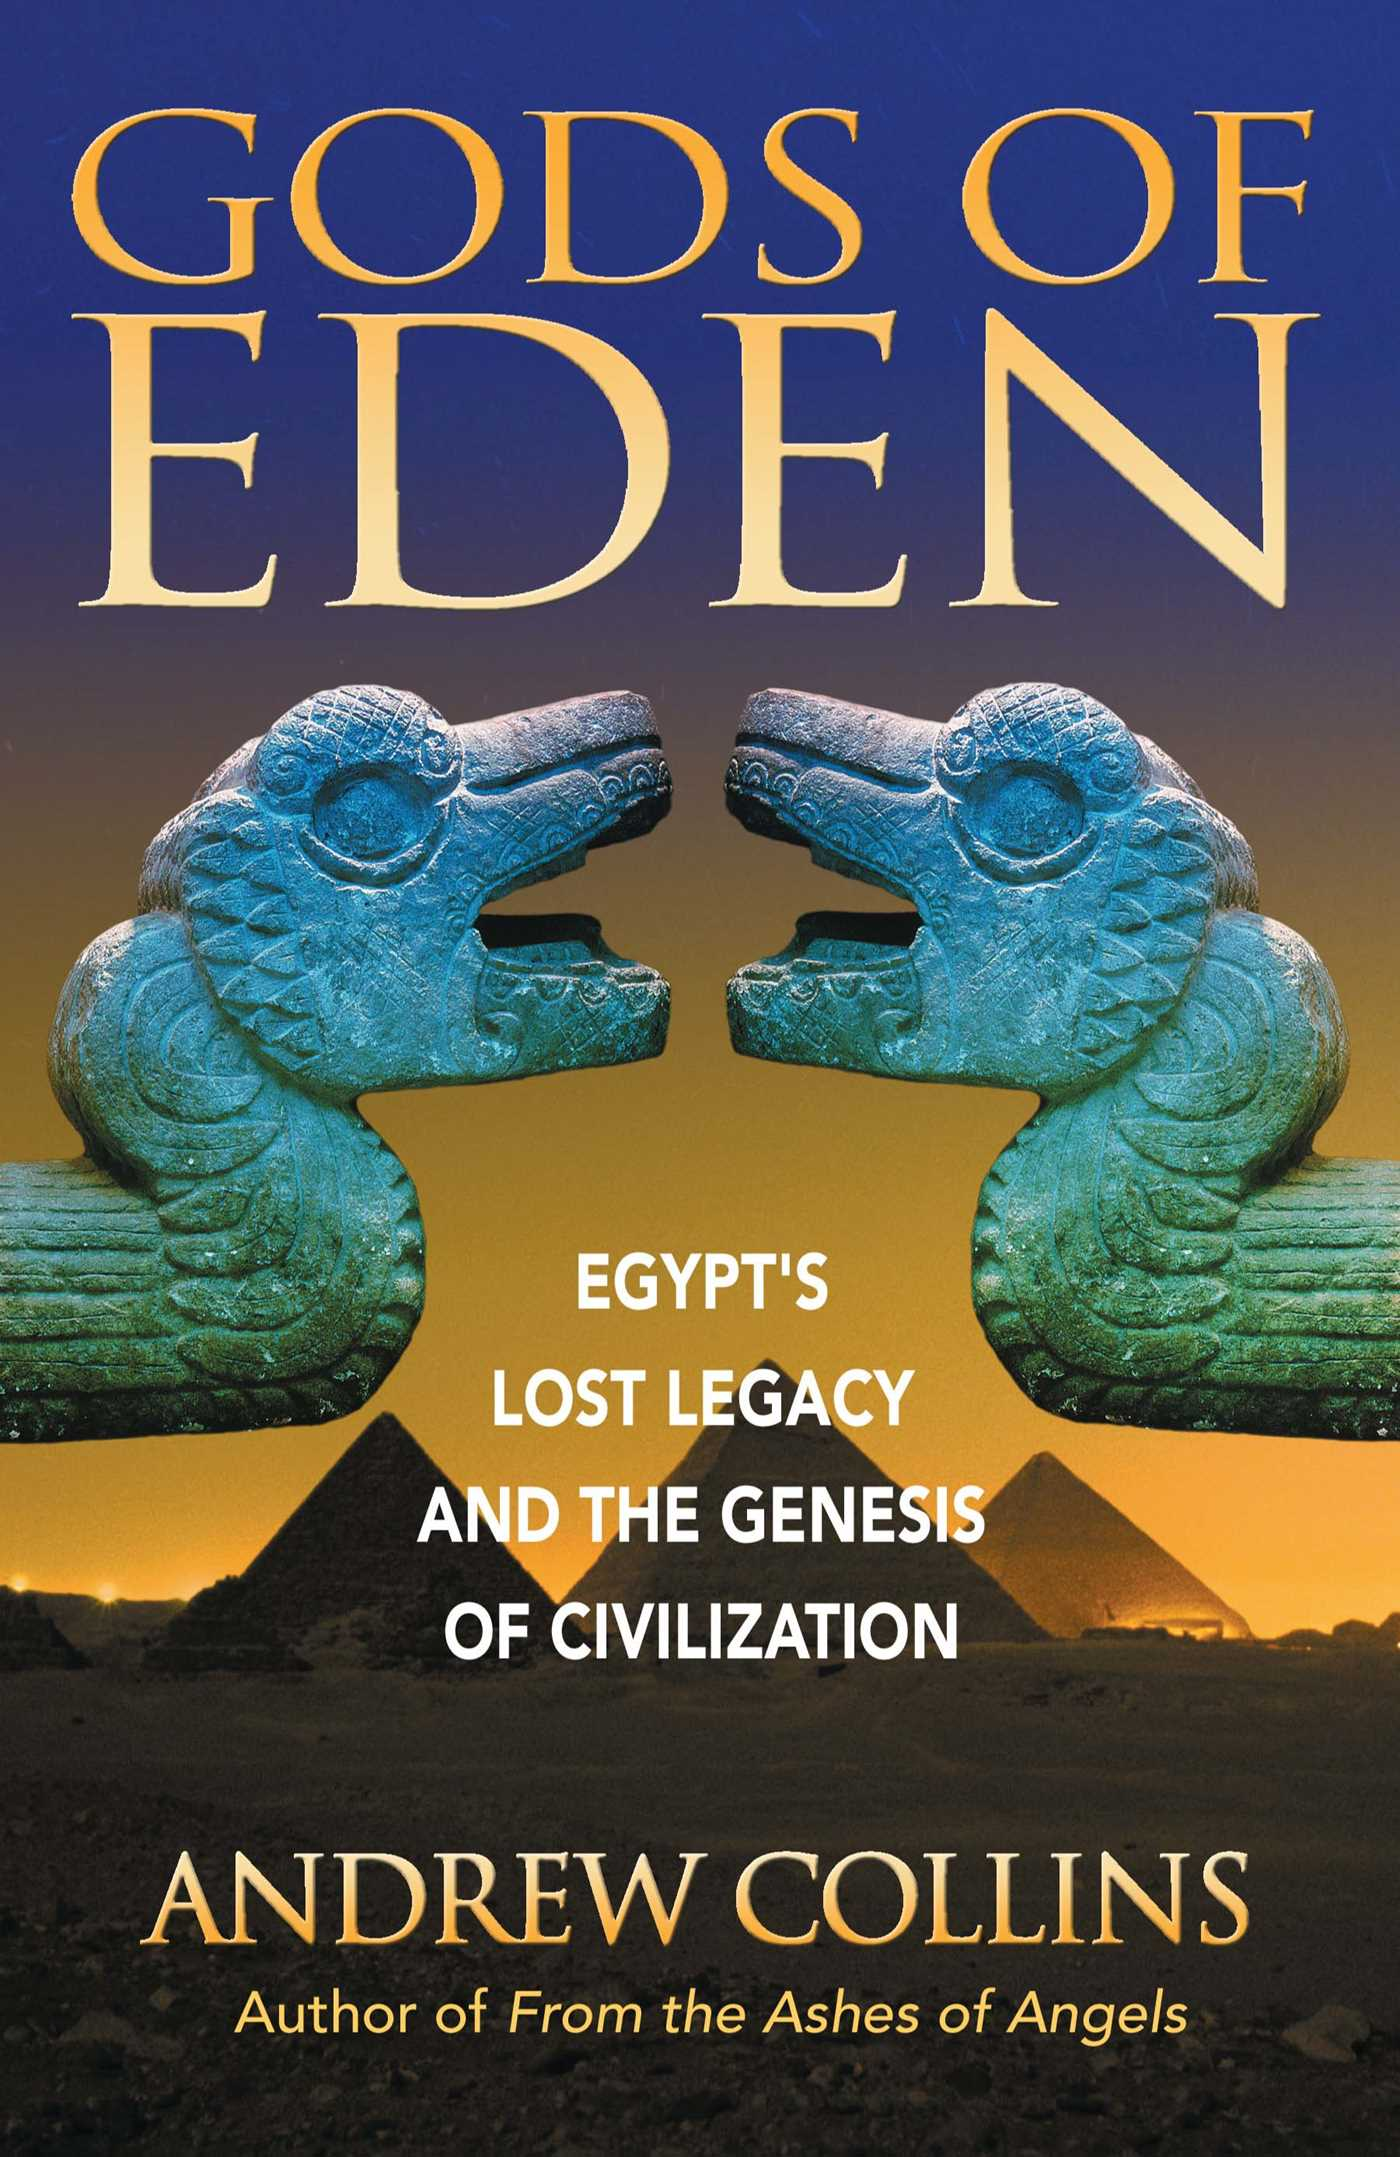 Gods of eden book by andrew collins official publisher page gods of eden 9781879181762 hr malvernweather Images